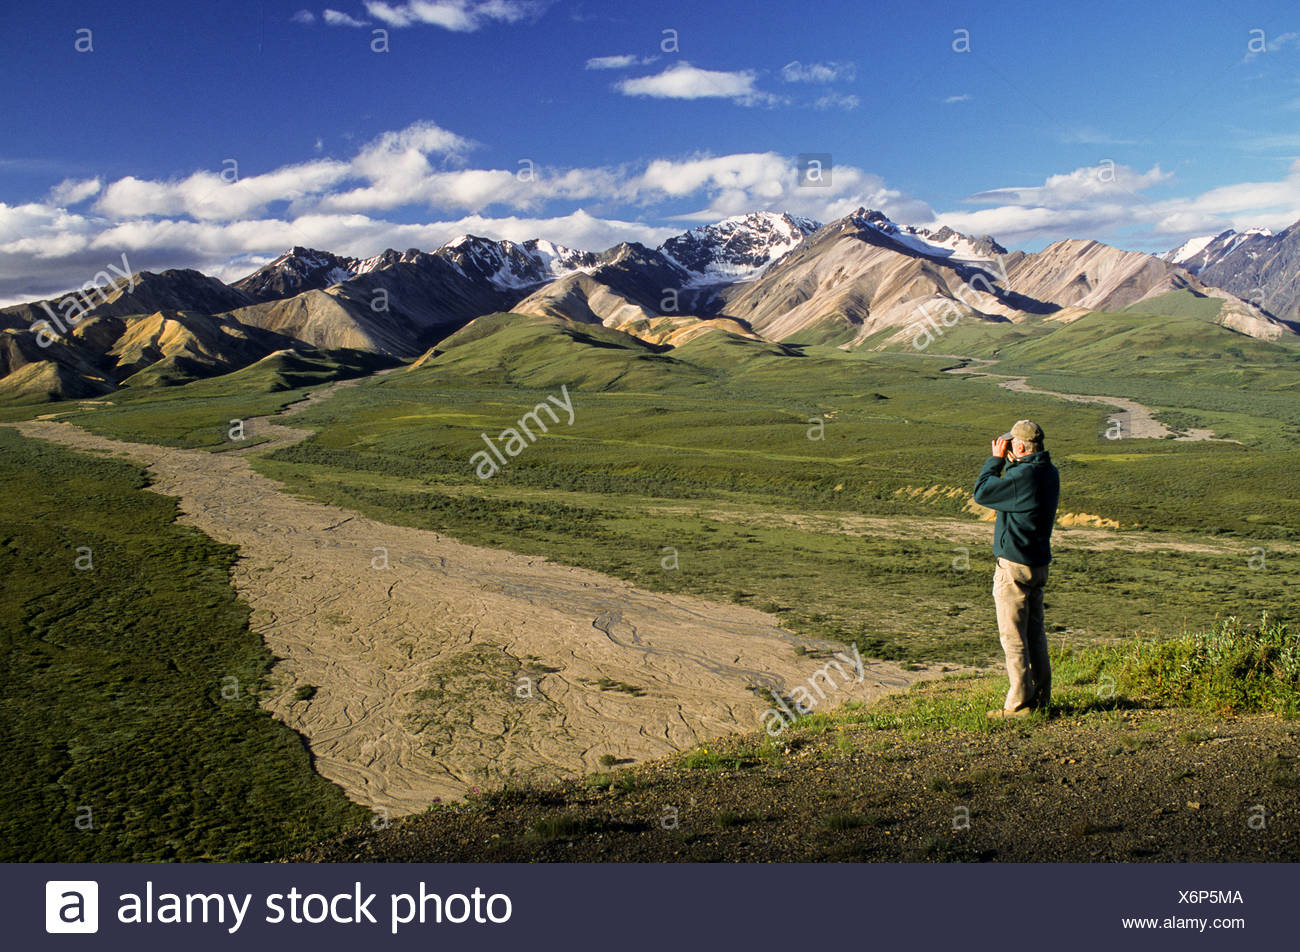 Alaska, Denali National Park. Polychrome Flats. Hiker enjoying the view. - Stock Image